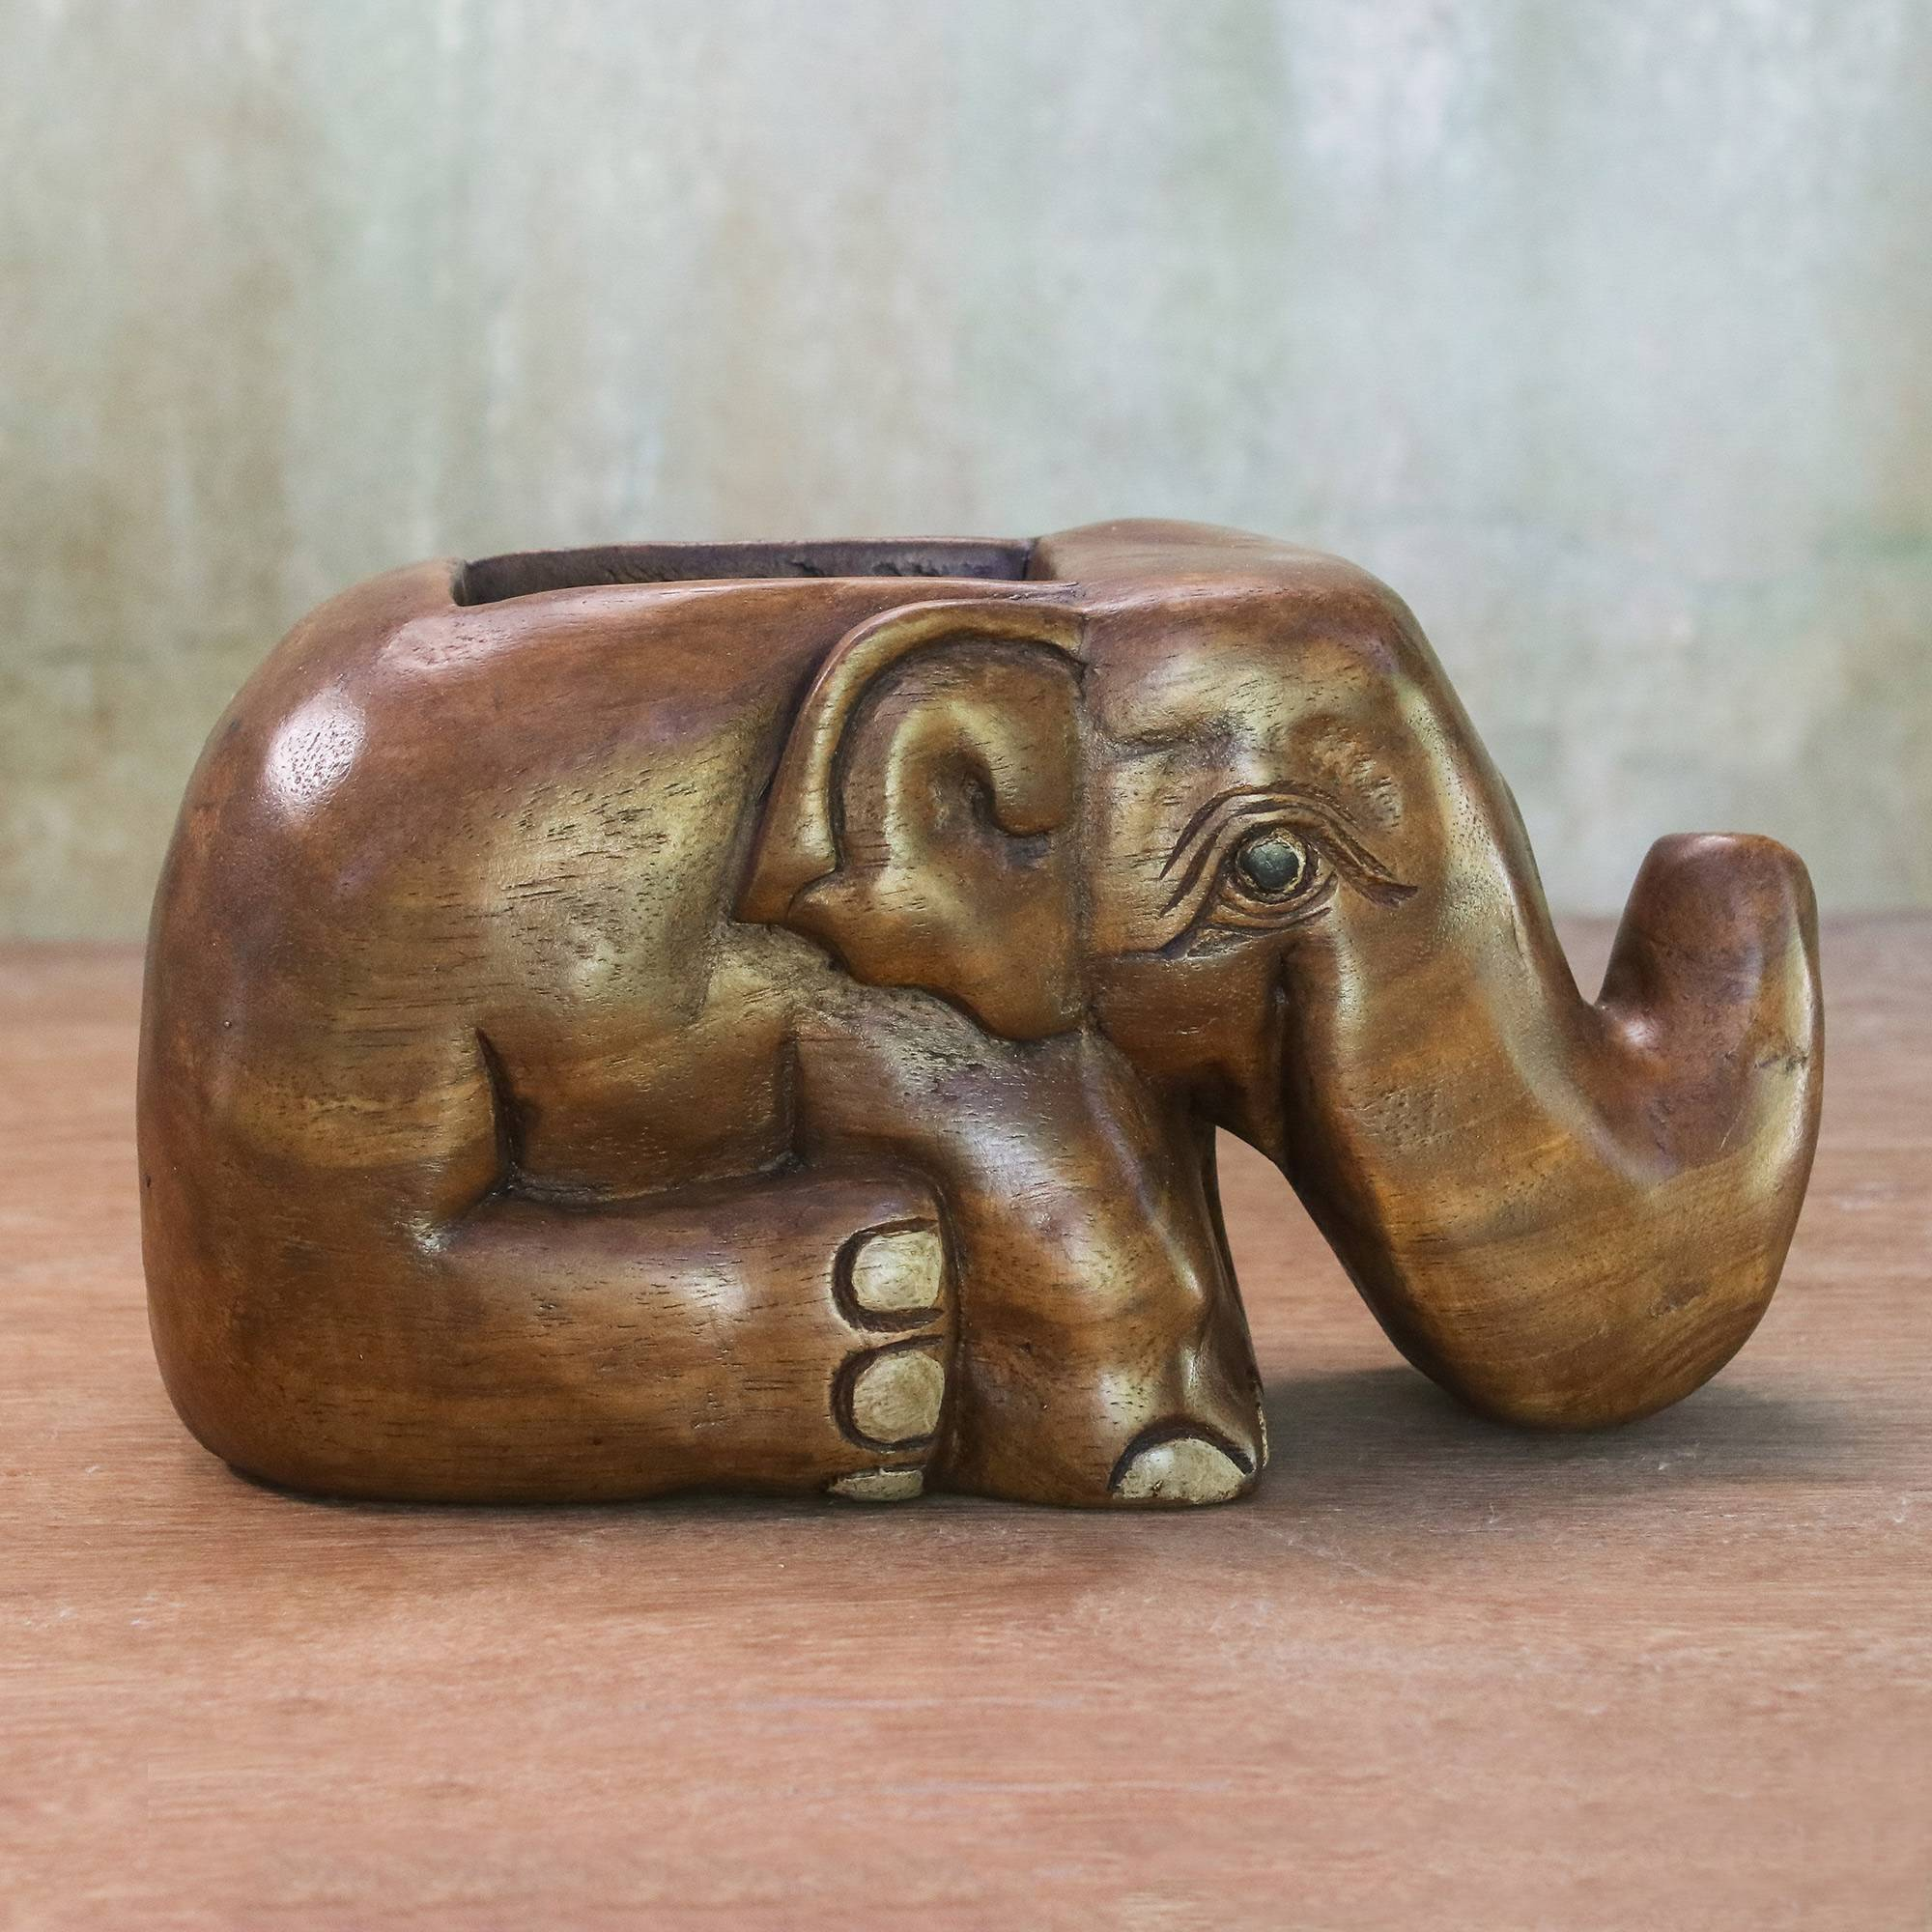 Elephant Sits Down Hand Carved Raintree Wood Elephant Card Holder Thailand Father's Day Gifting